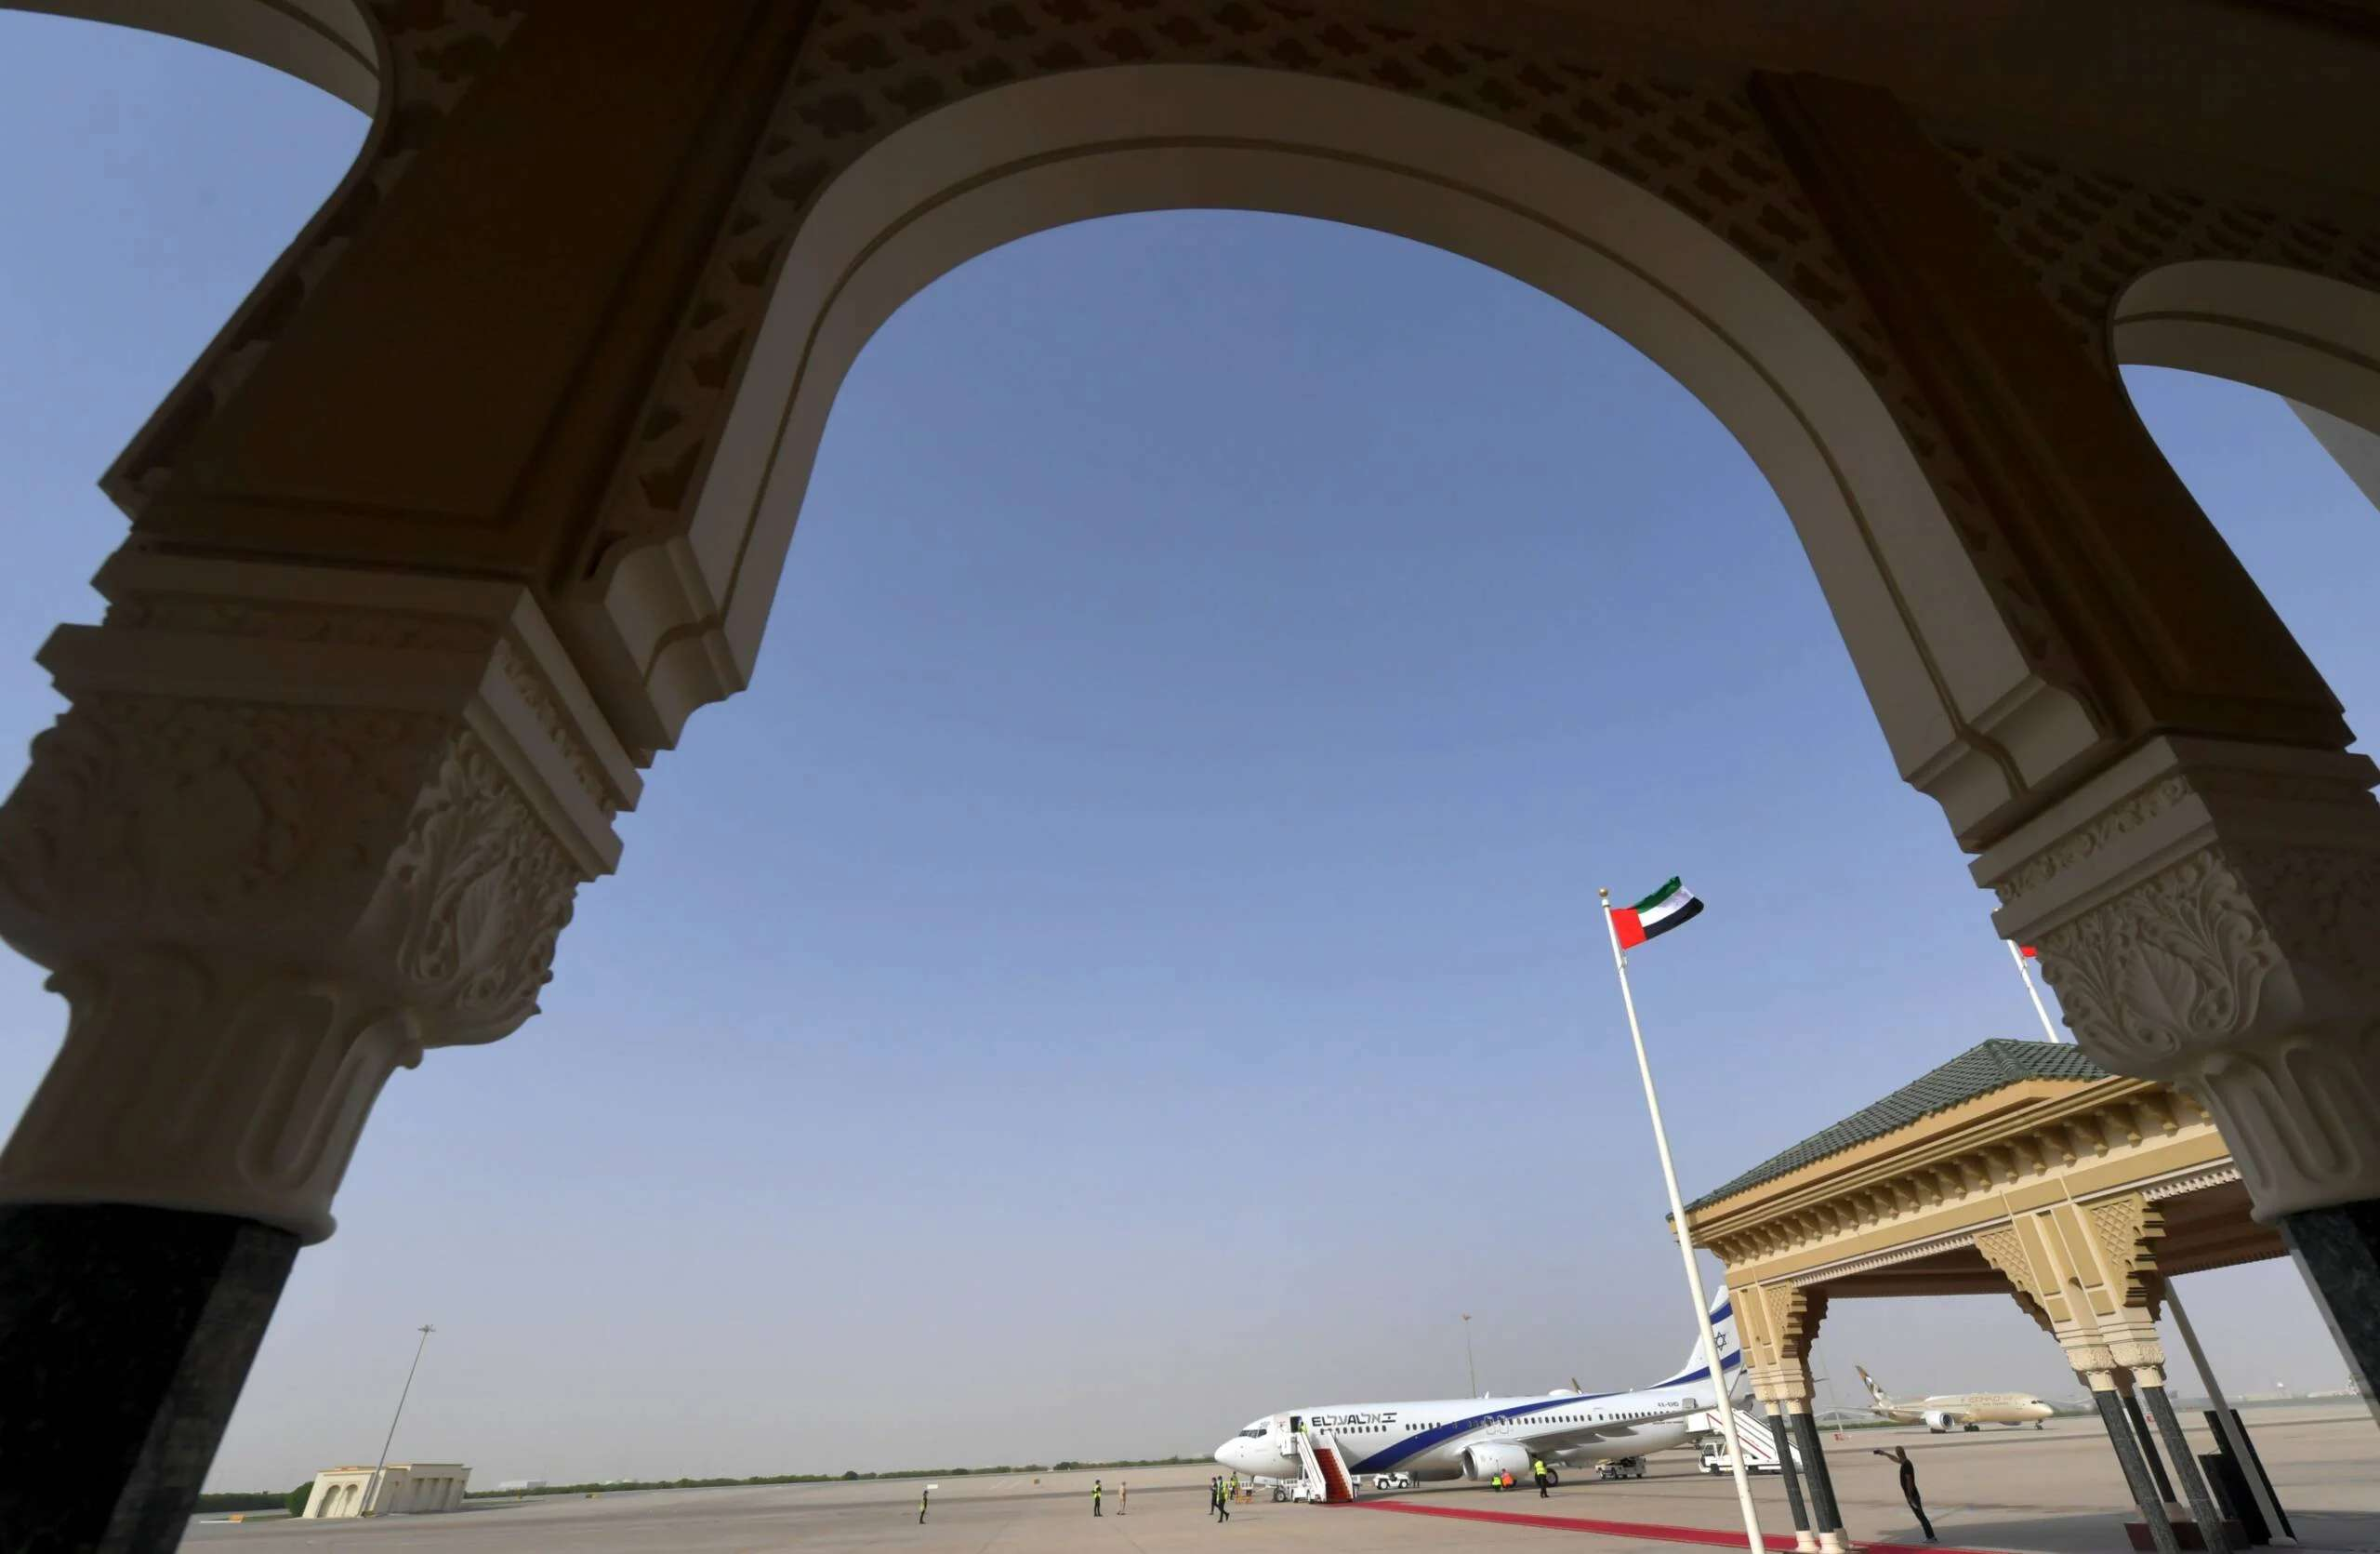 An El Al aircraft, which carried a U.S.-Israeli delegation to the UAE following a normalization accord, is pictured at the tarmac of the Abu Dhabi airport following the arrival of the first-ever commercial flight from Israel to the UAE on Aug. 31, 2020. (Photo by Karim Sahib/AFP via Getty Images)